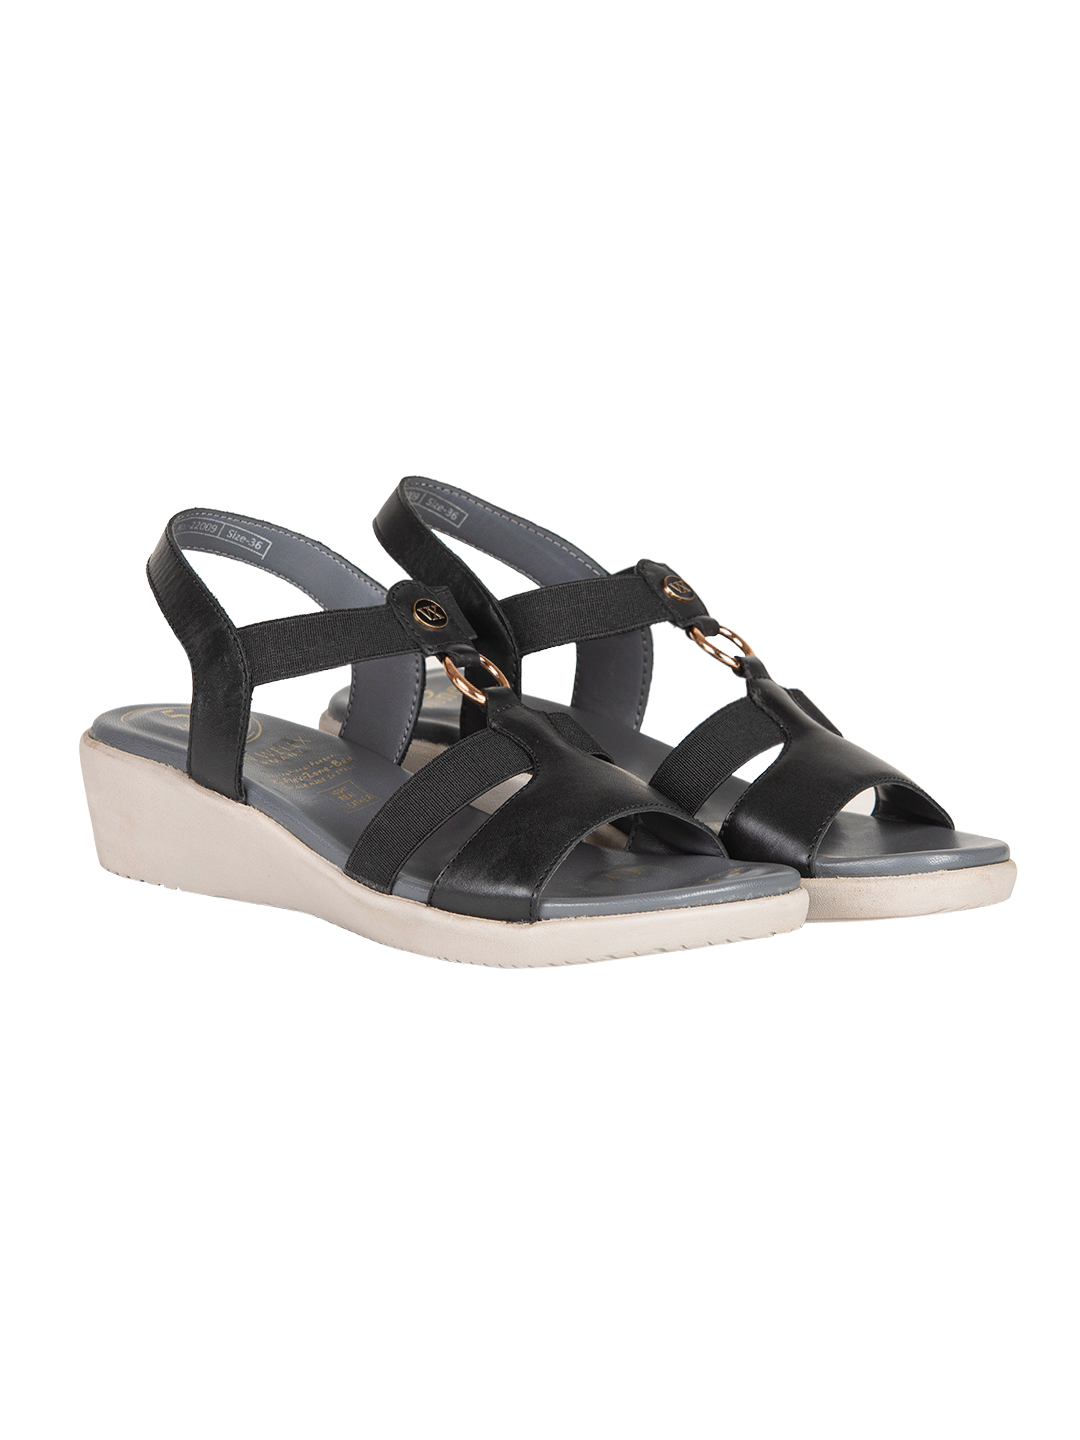 Buy VON WELLX AMOS COMFORT BLACK SANDALS In Delhi